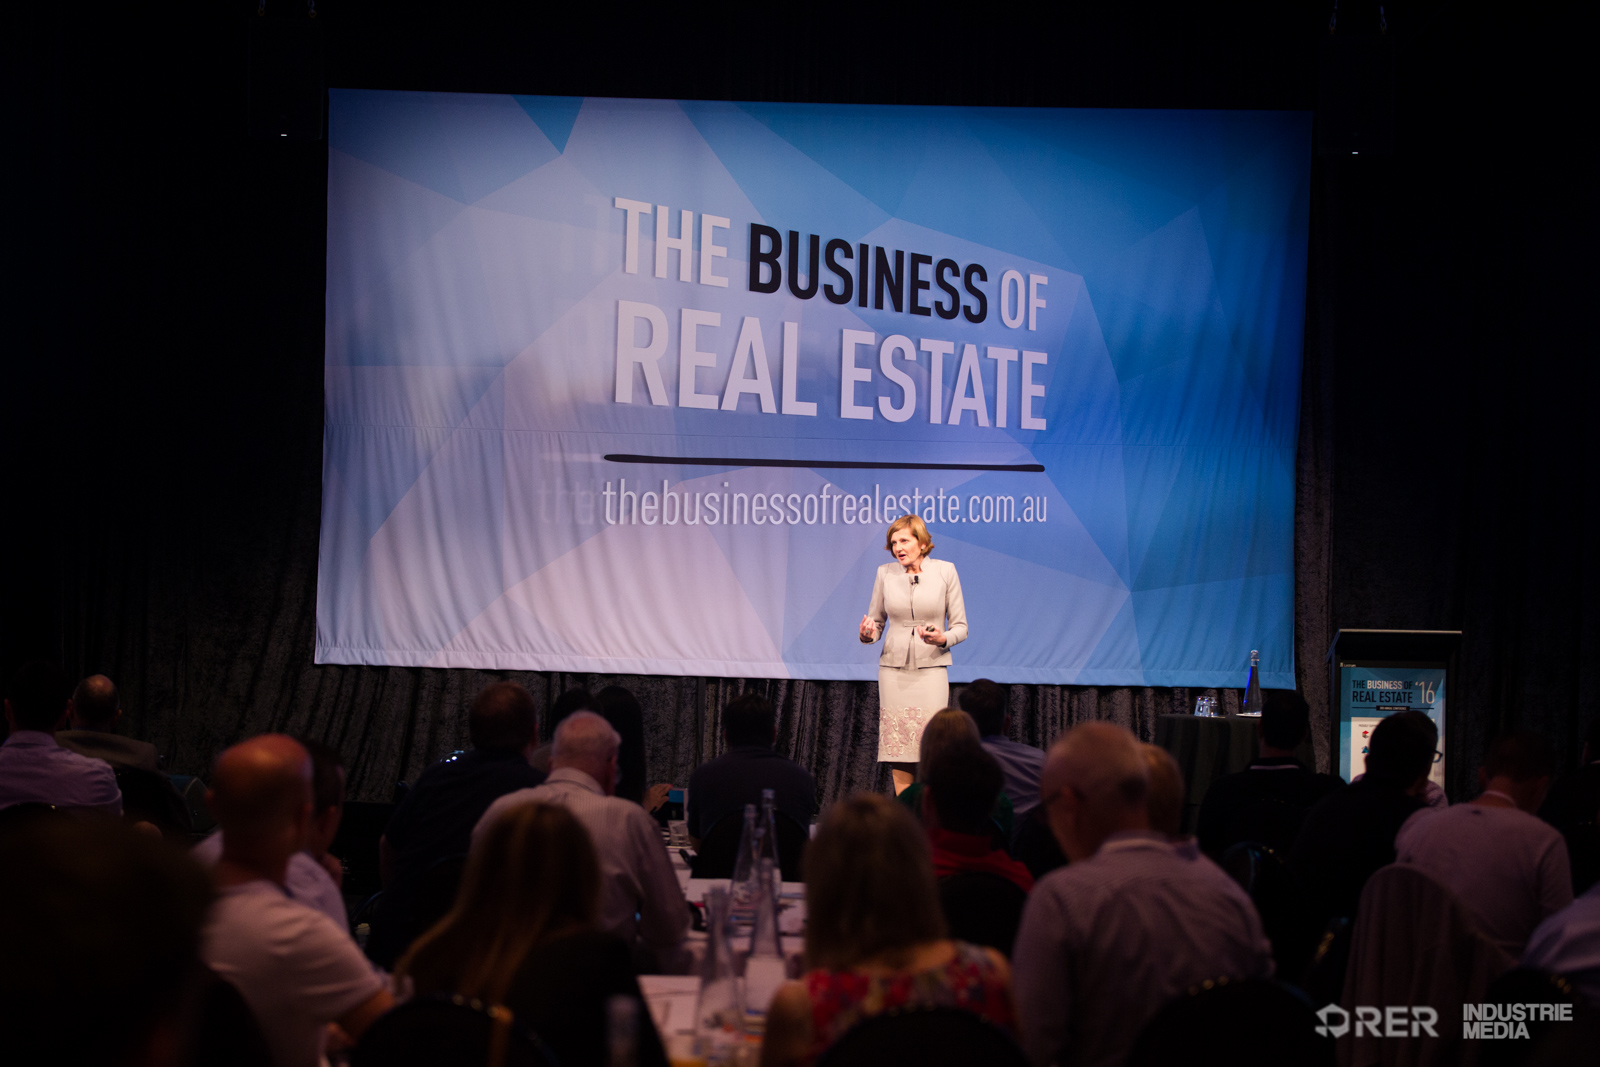 http://www.thebusinessofrealestate.com.au/wp-content/uploads/2016/09/RER_BUSINESS_OF_REAL_ESTATE_DAY_2-14.jpg